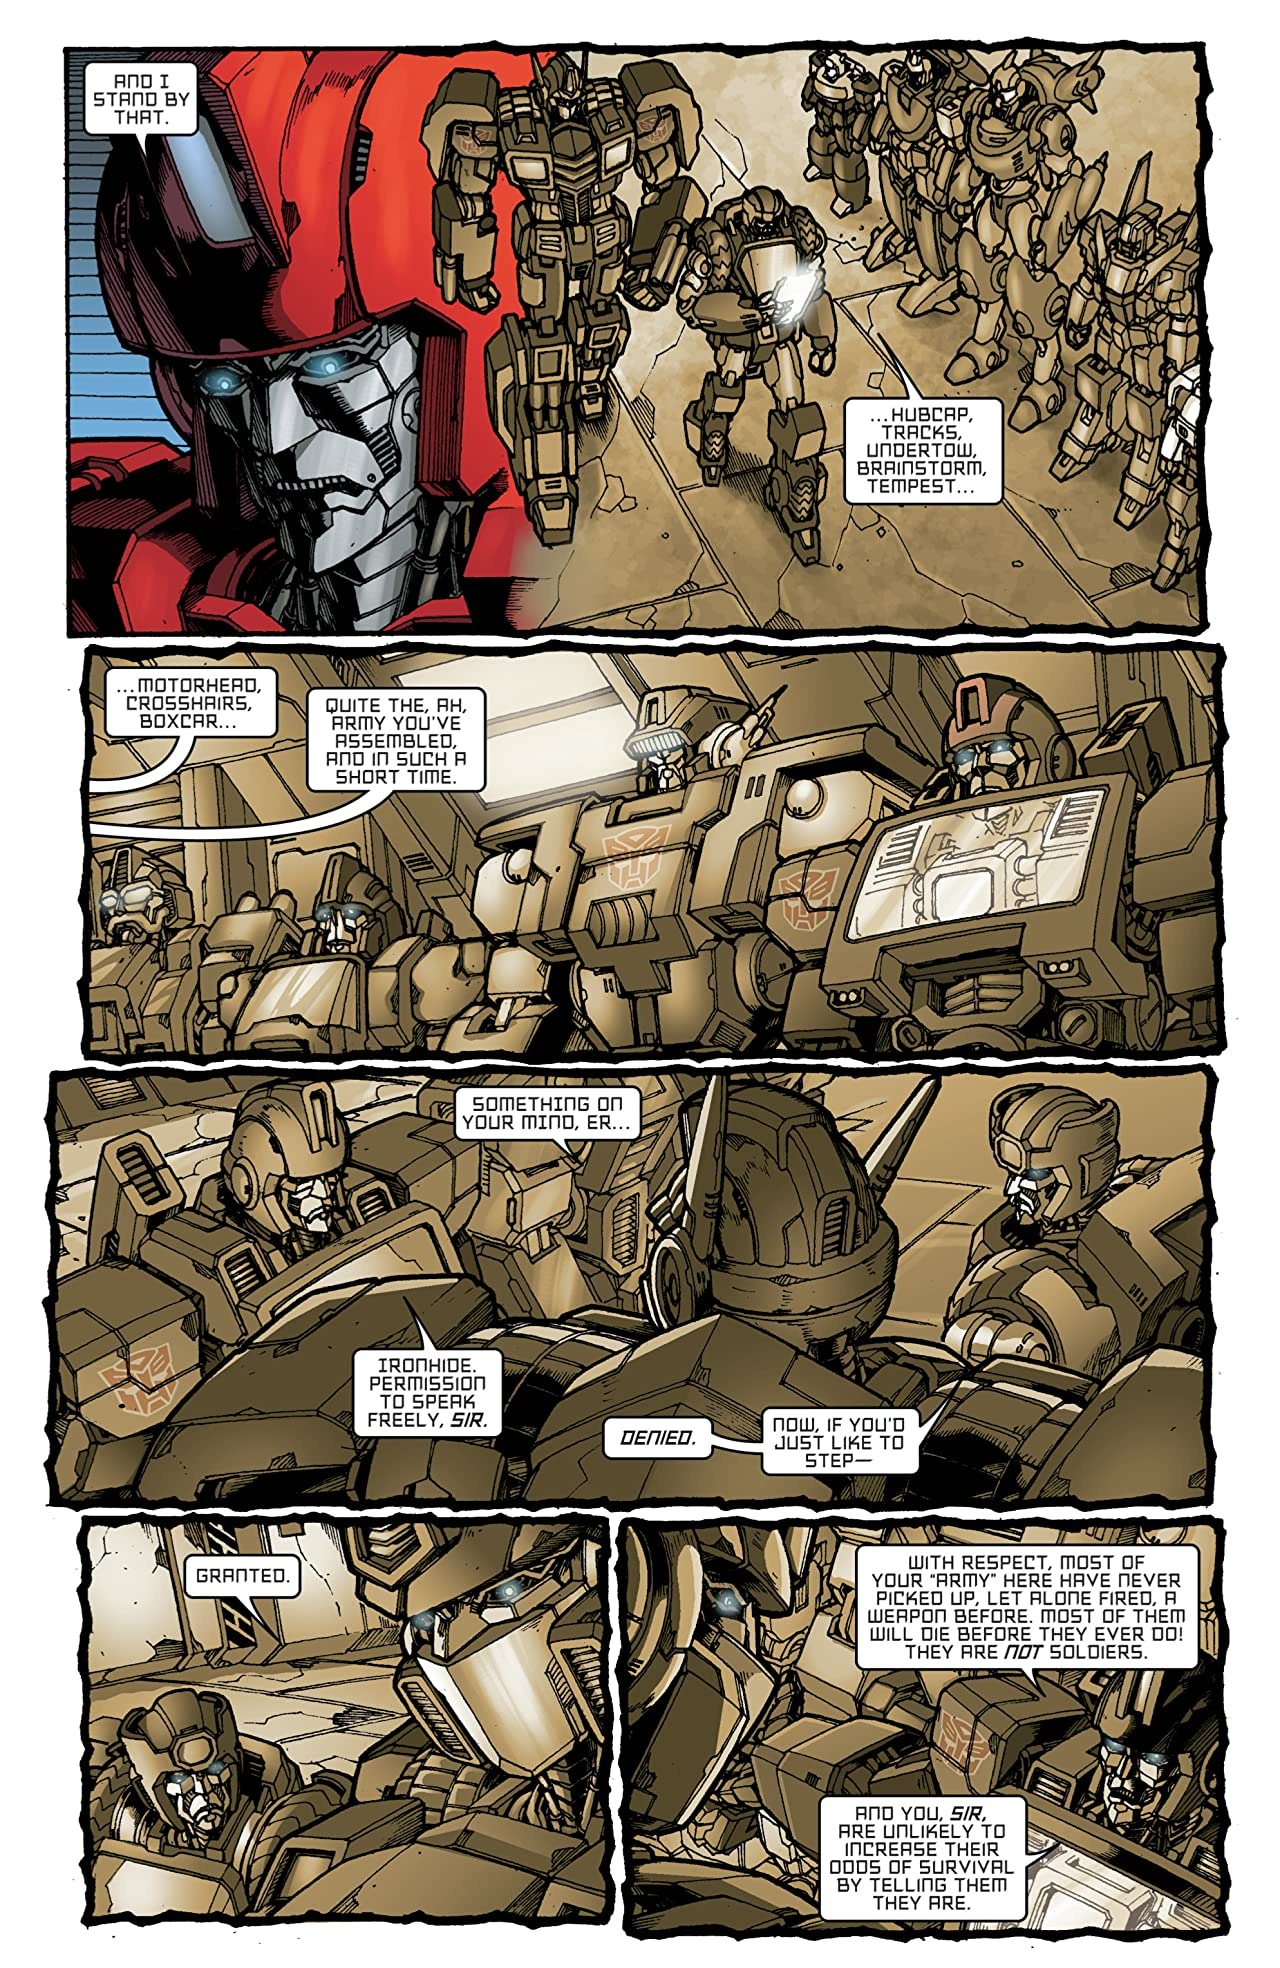 Transformers: All Hail Megatron #13